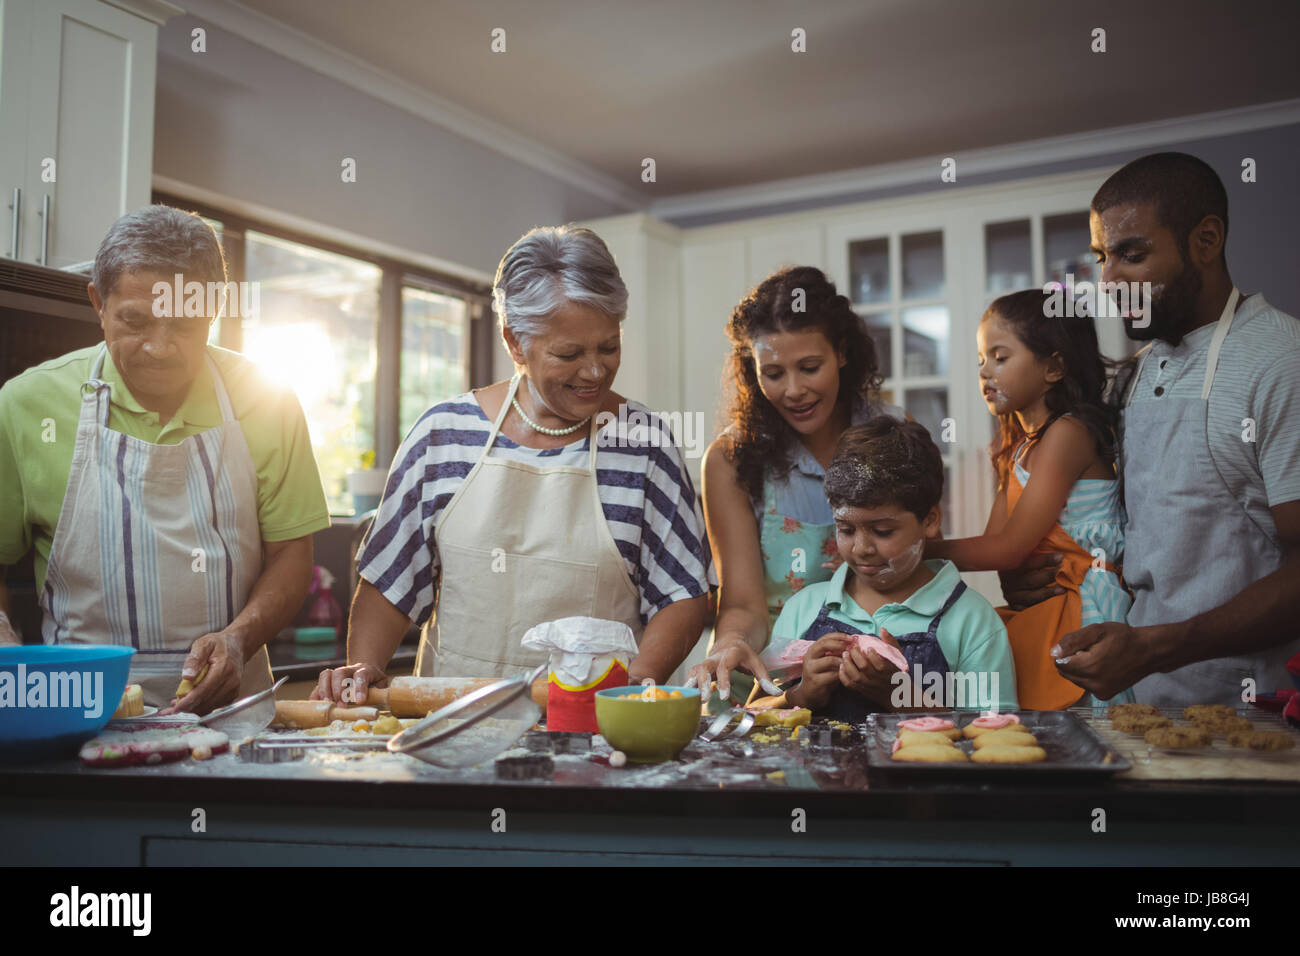 Happy family preparing dessert in kitchen at home Stock Photo